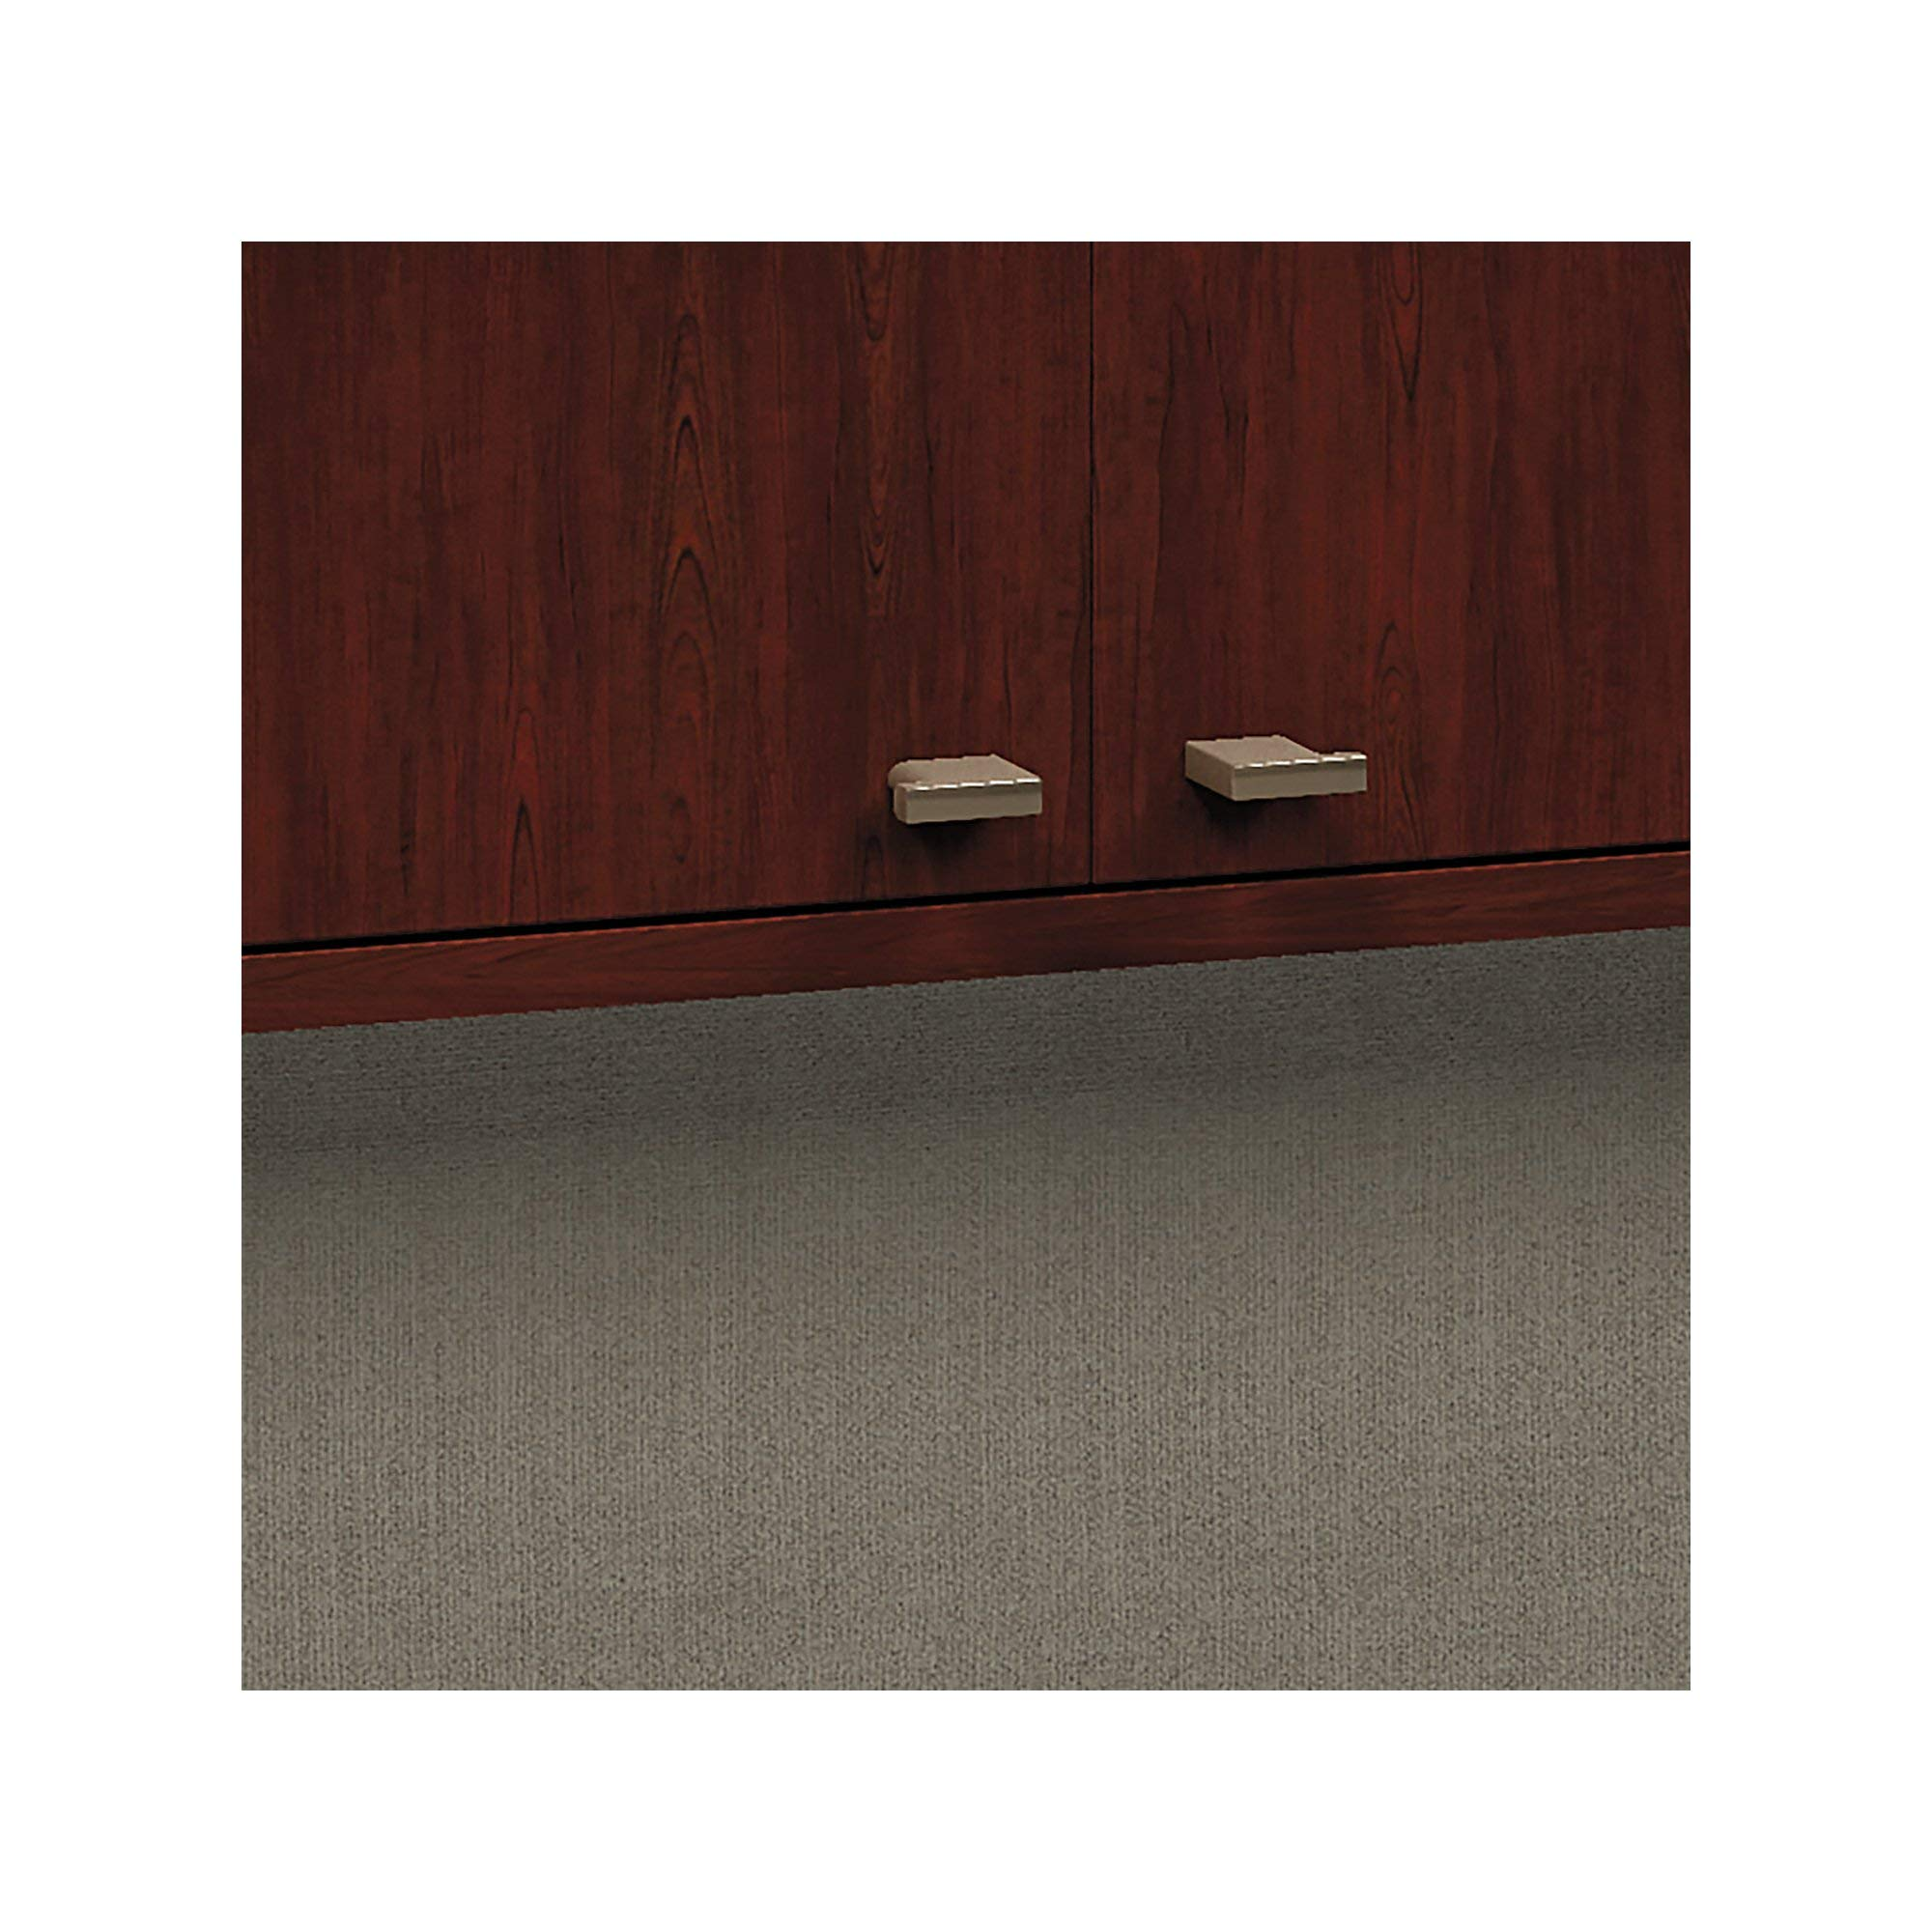 Bush Low Hutch, 60-Inch by 12-Inch by 27-5/8-Inch, Harvest Cherry by Bush (Image #4)